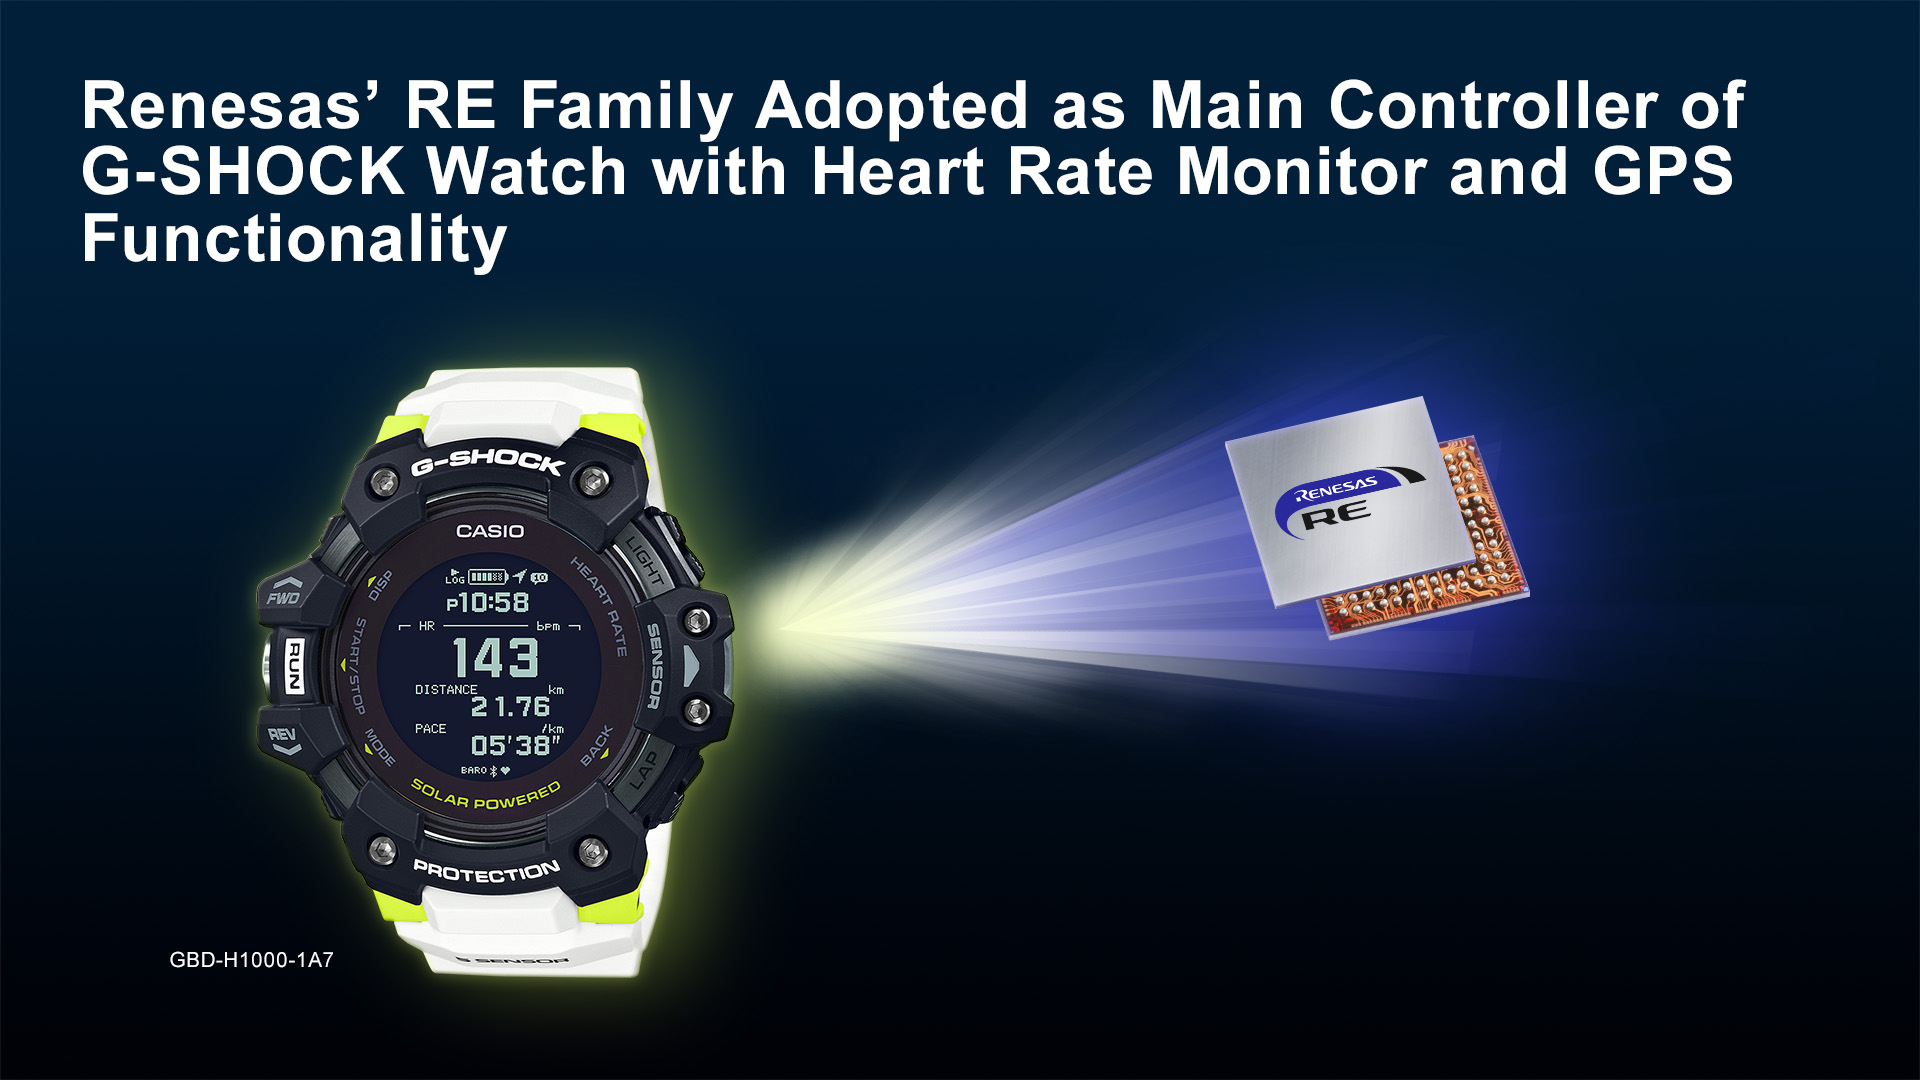 Renesas RE Family Chosen as Main Controller of G-SHOCK Watch